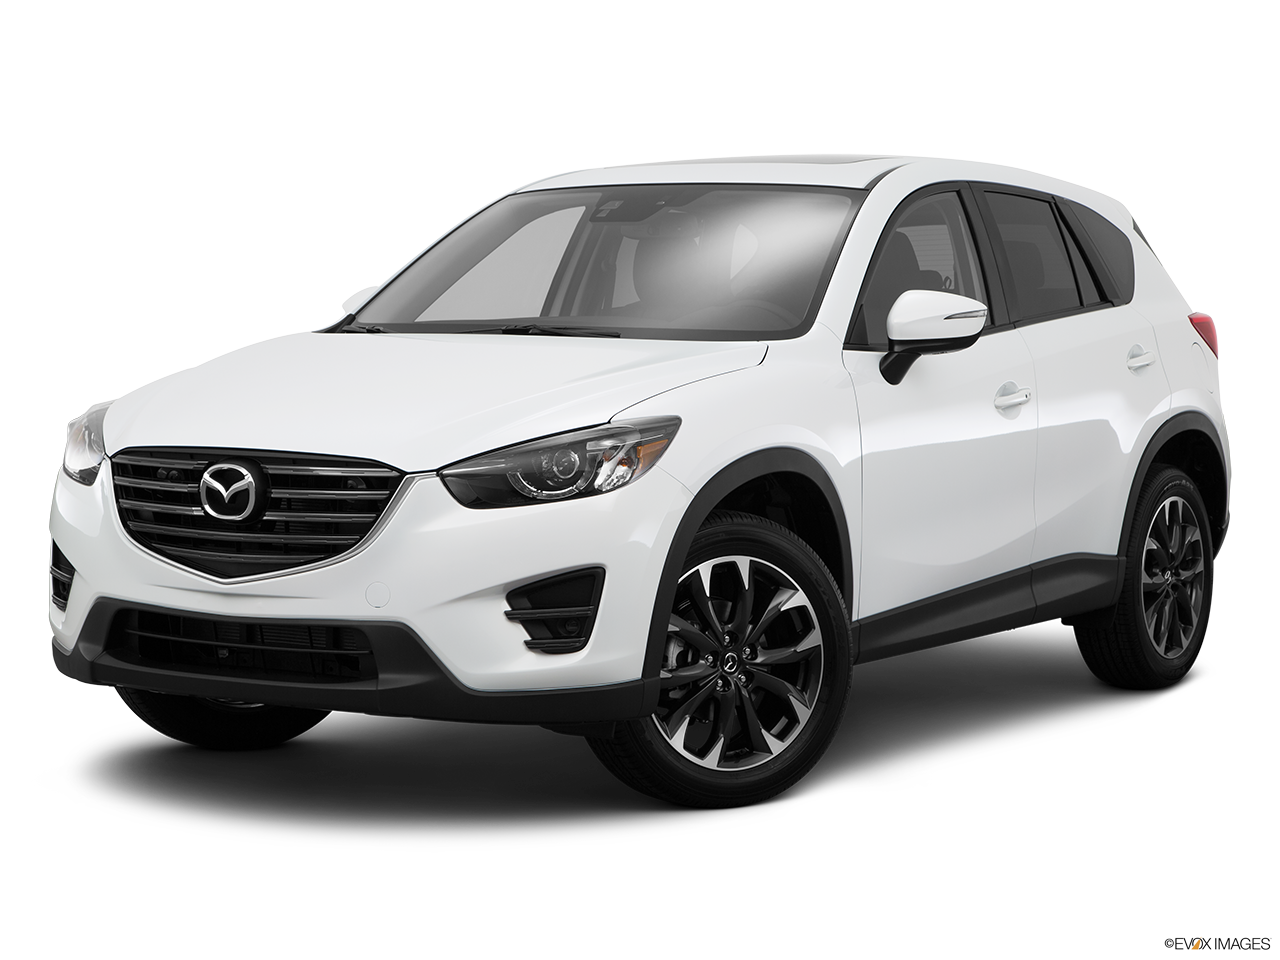 2016 mazda cx 5 dealer in syracuse romano mazda. Black Bedroom Furniture Sets. Home Design Ideas